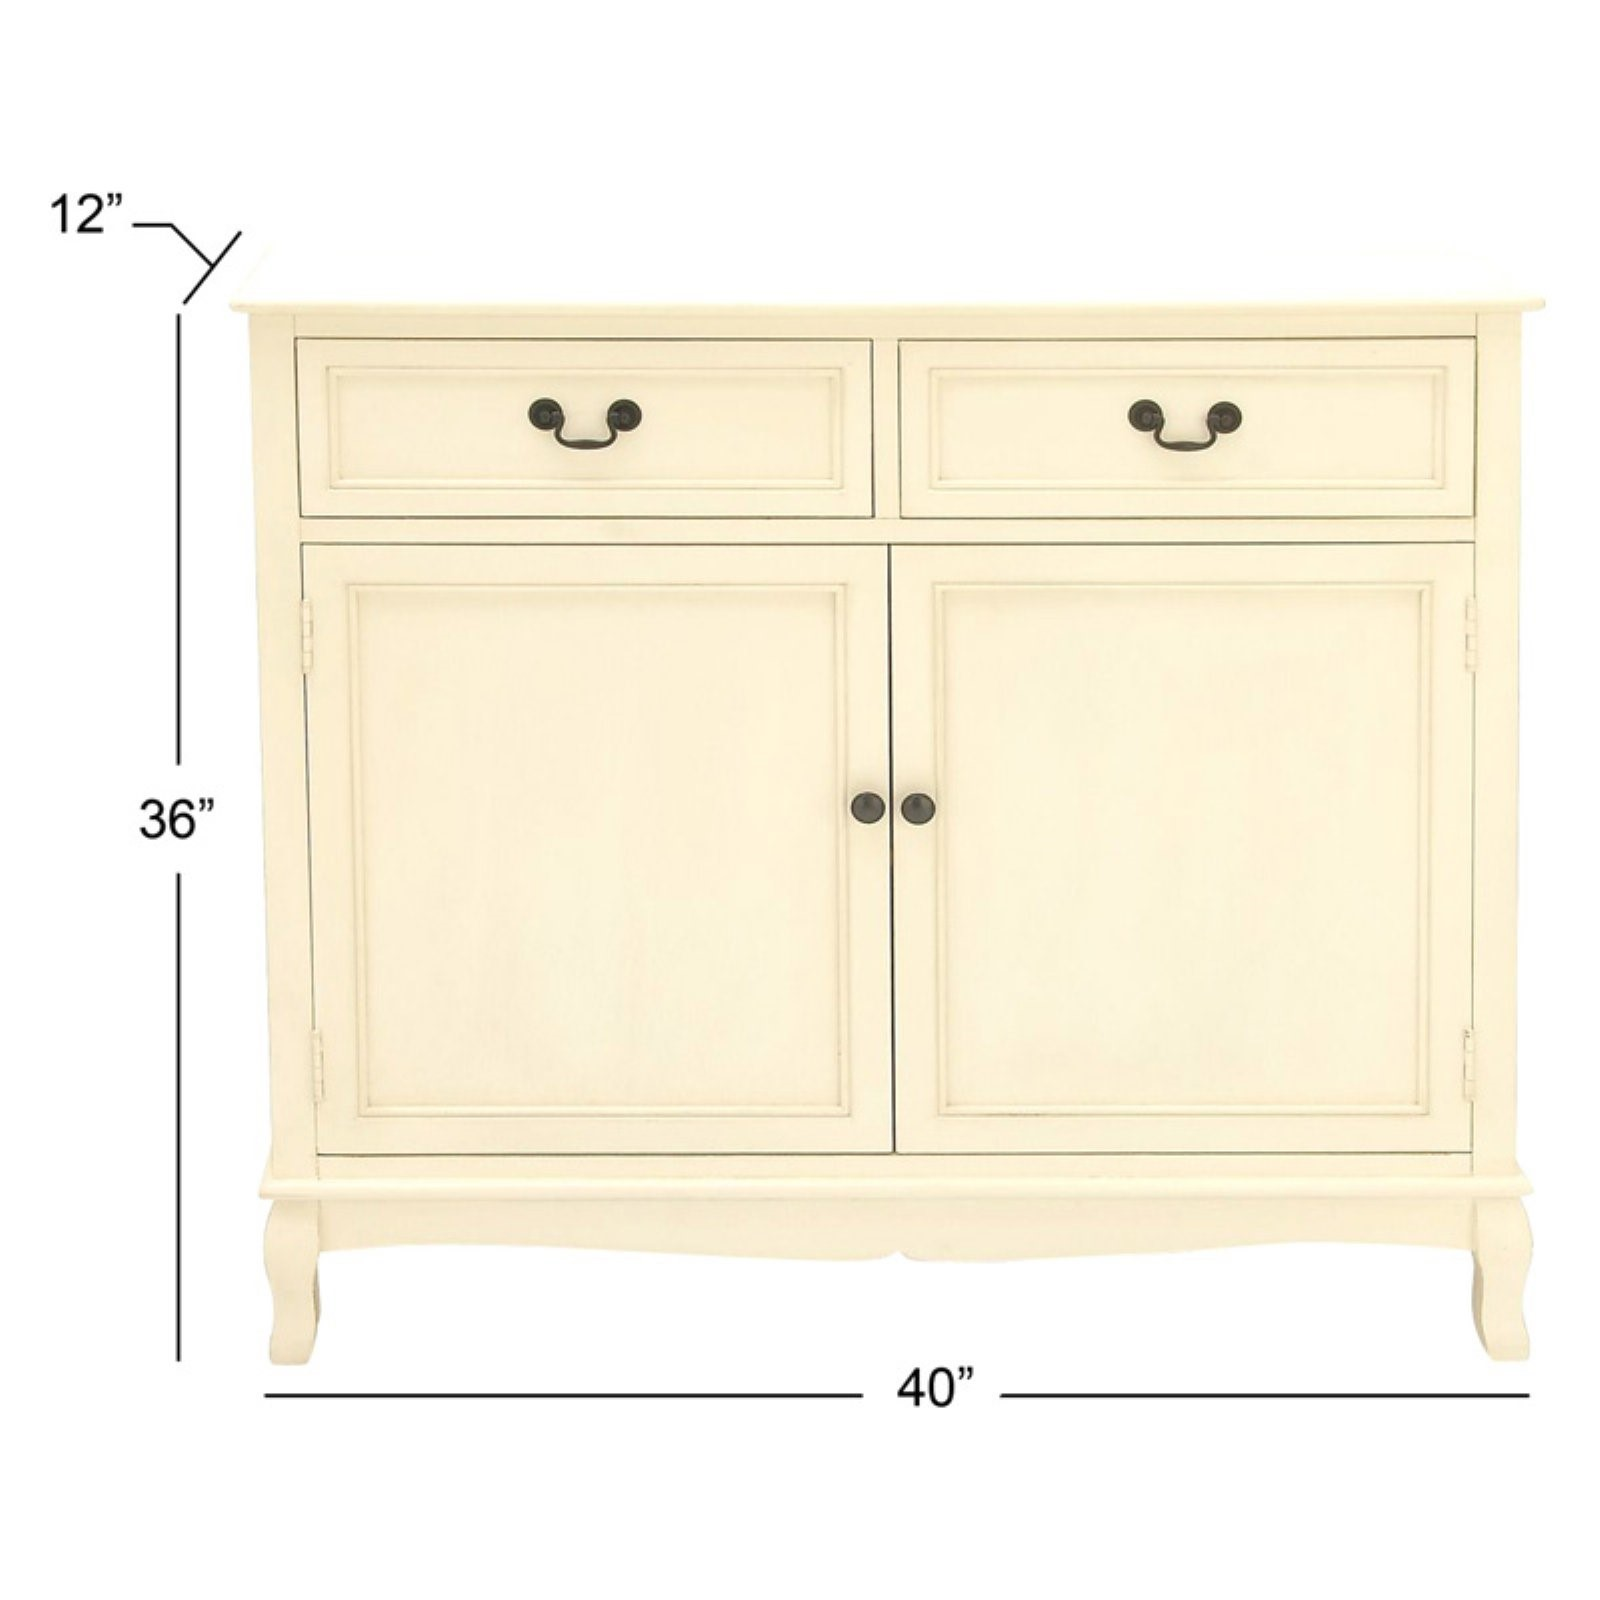 Decmode Farmhouse 36 X 40 Inch Wooden Two Door Cabinet With Top Drawers,  Cream White   Walmart.com